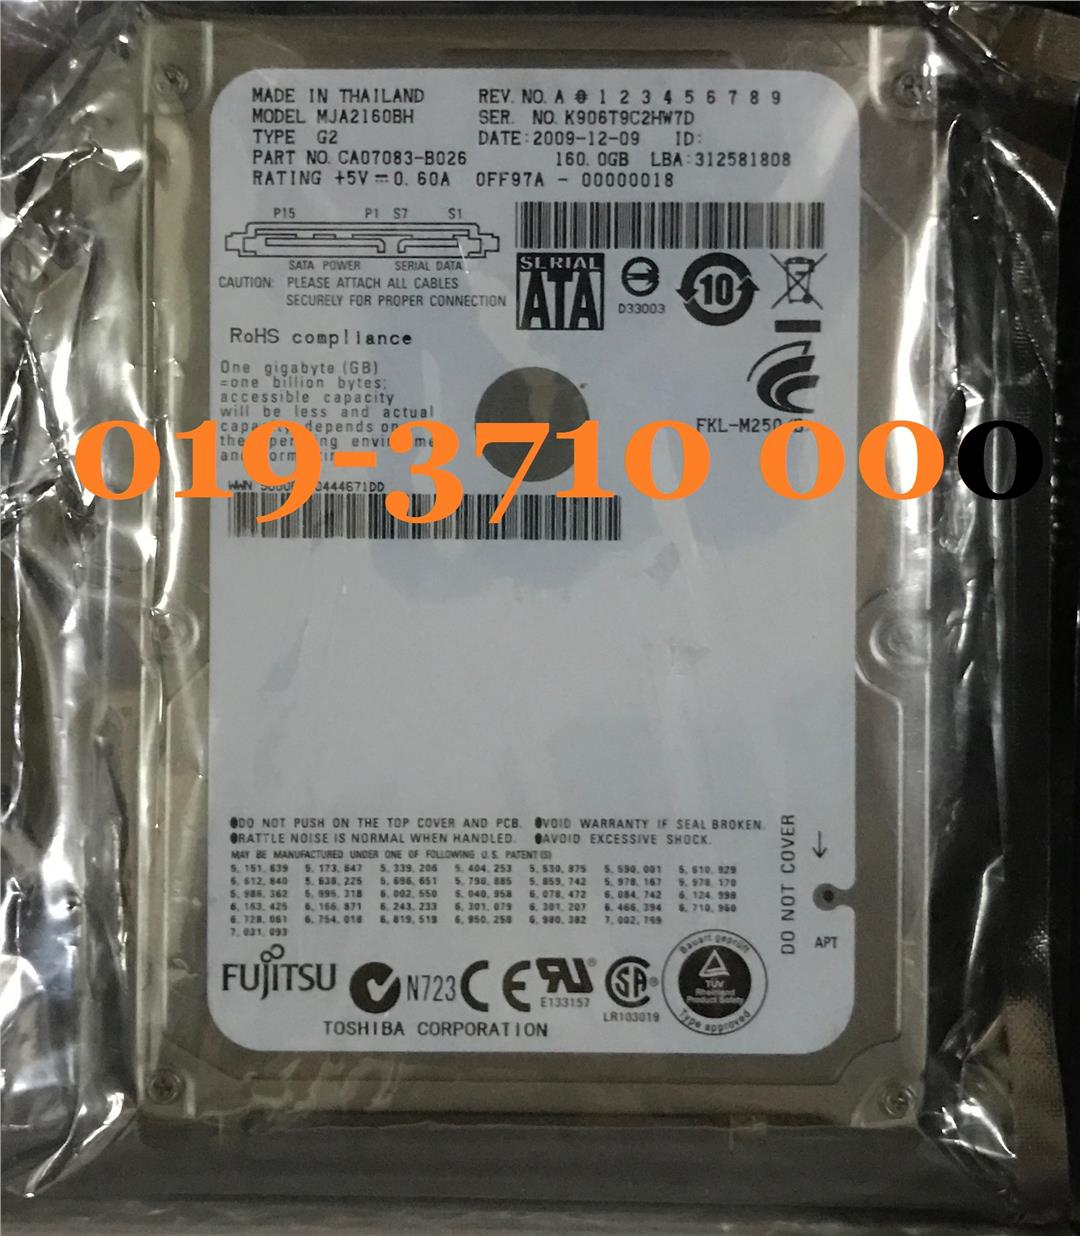 Hard Disk 160gb Sata 25 For Lapto End 12 11 2017 815 Pm Hdd 160 Gb Like New Laptop Notebook Computer Fujitsu Seagate